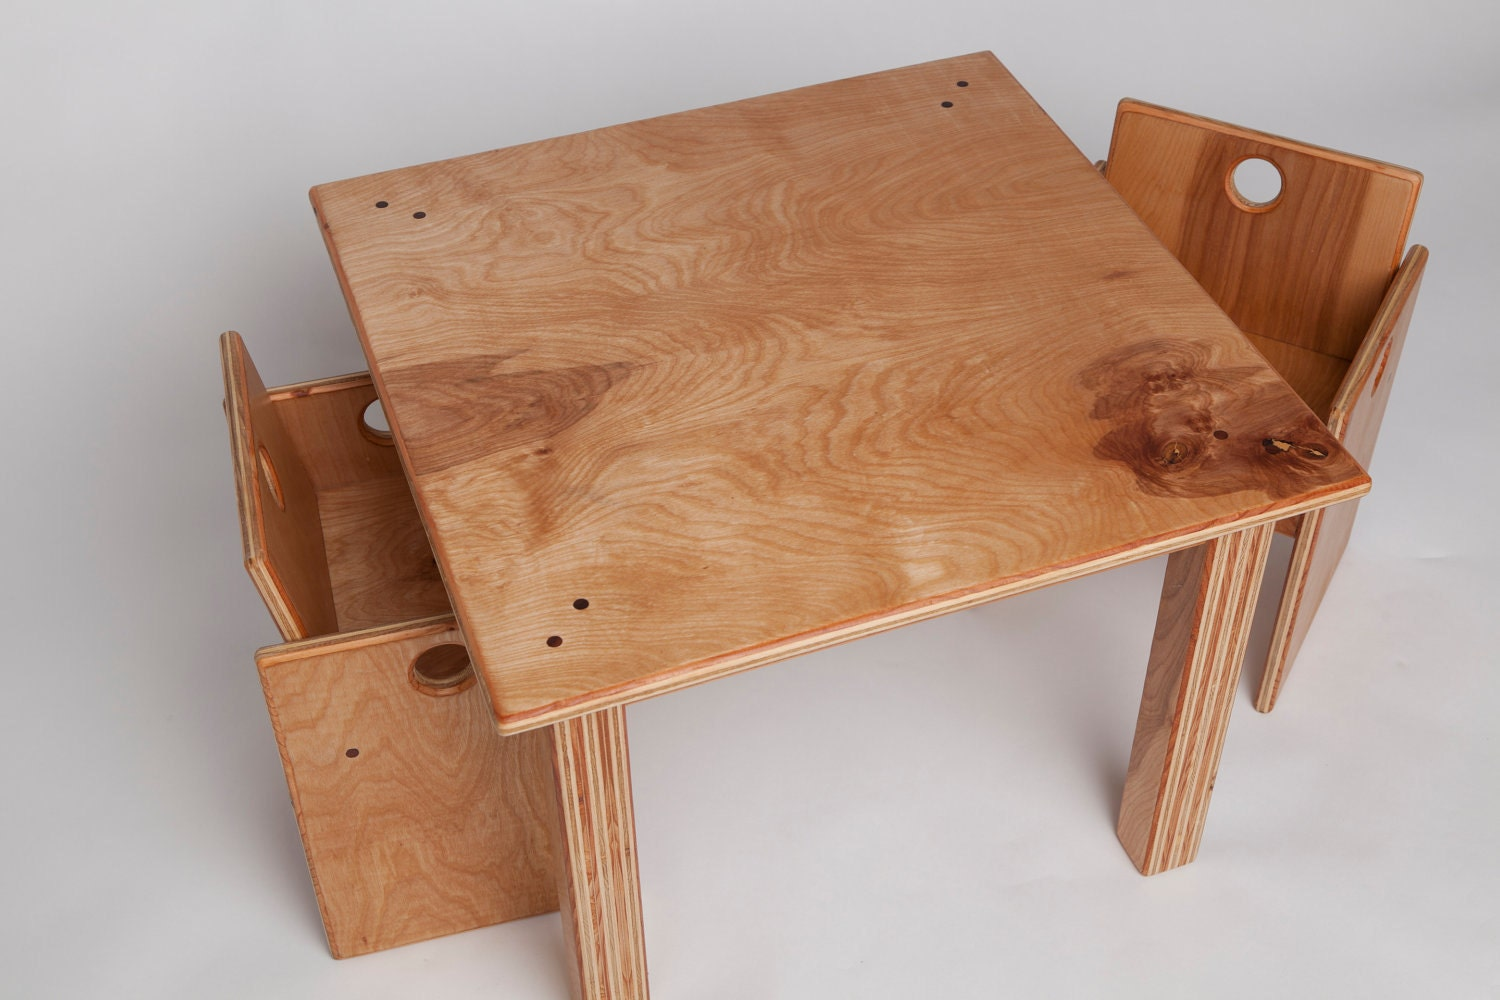 Toddler Size Wooden Table and Chairs